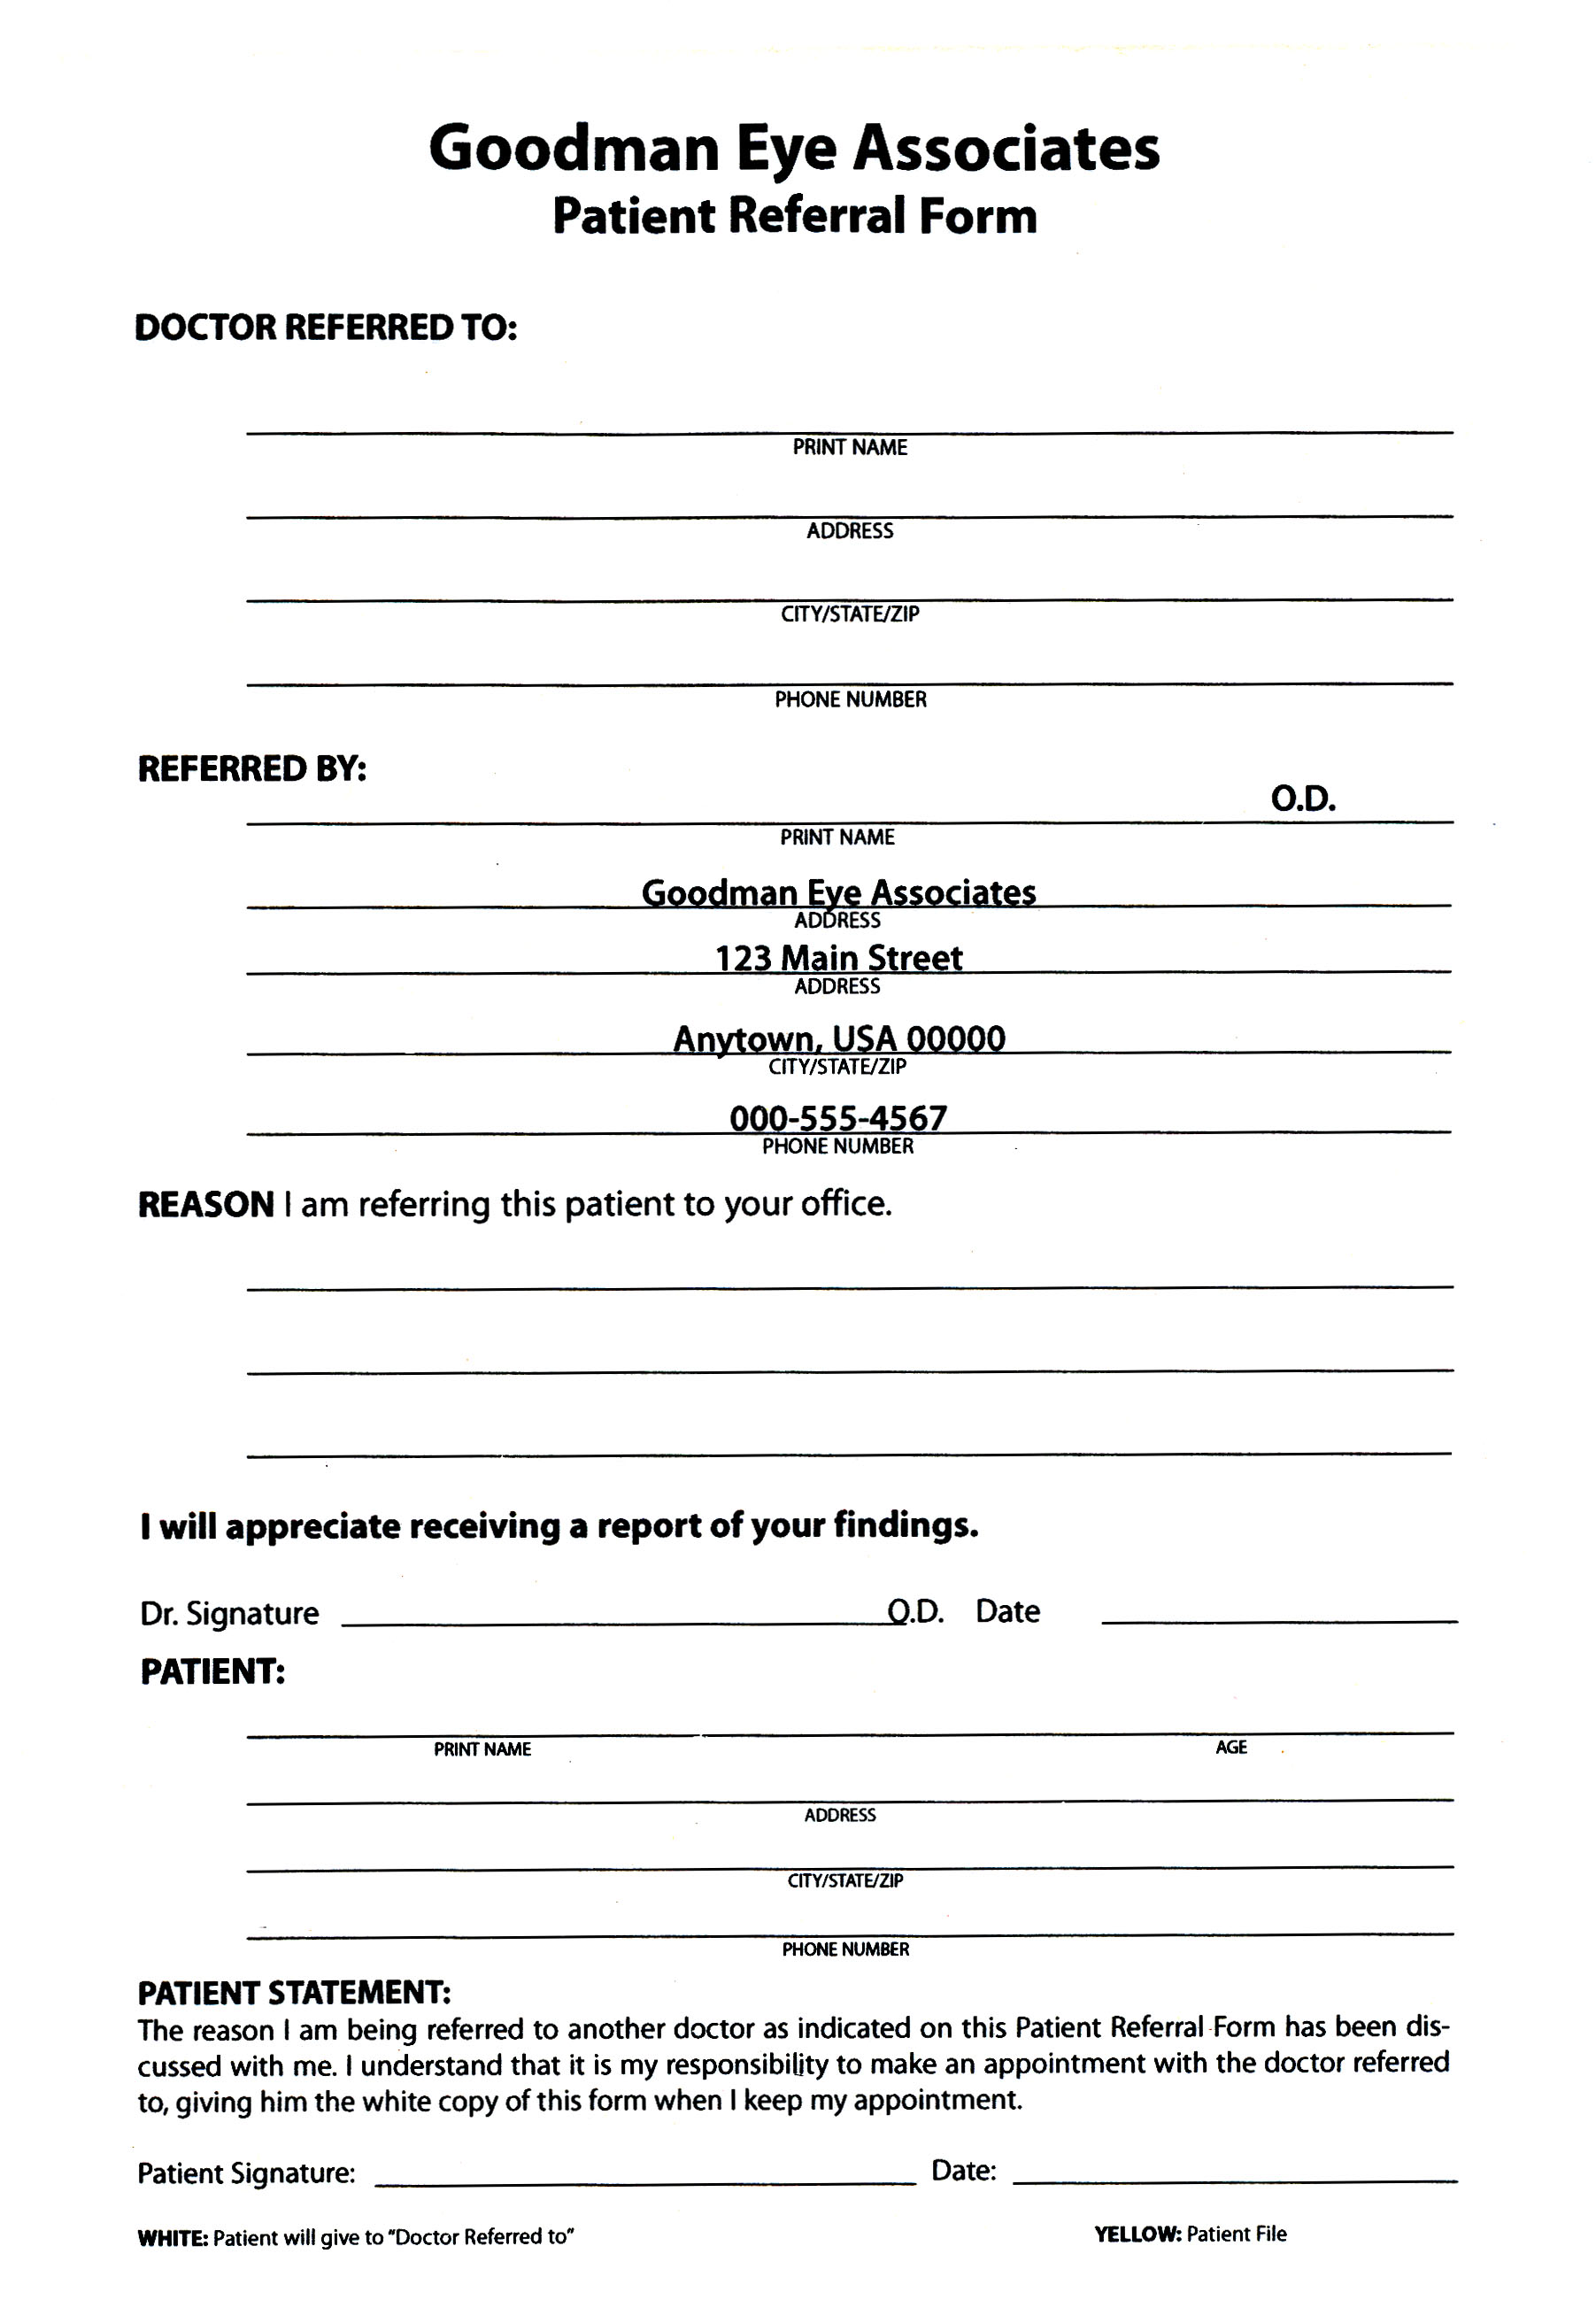 Medical Referral Form 2 Free Templates in PDF, Word, Excel Download